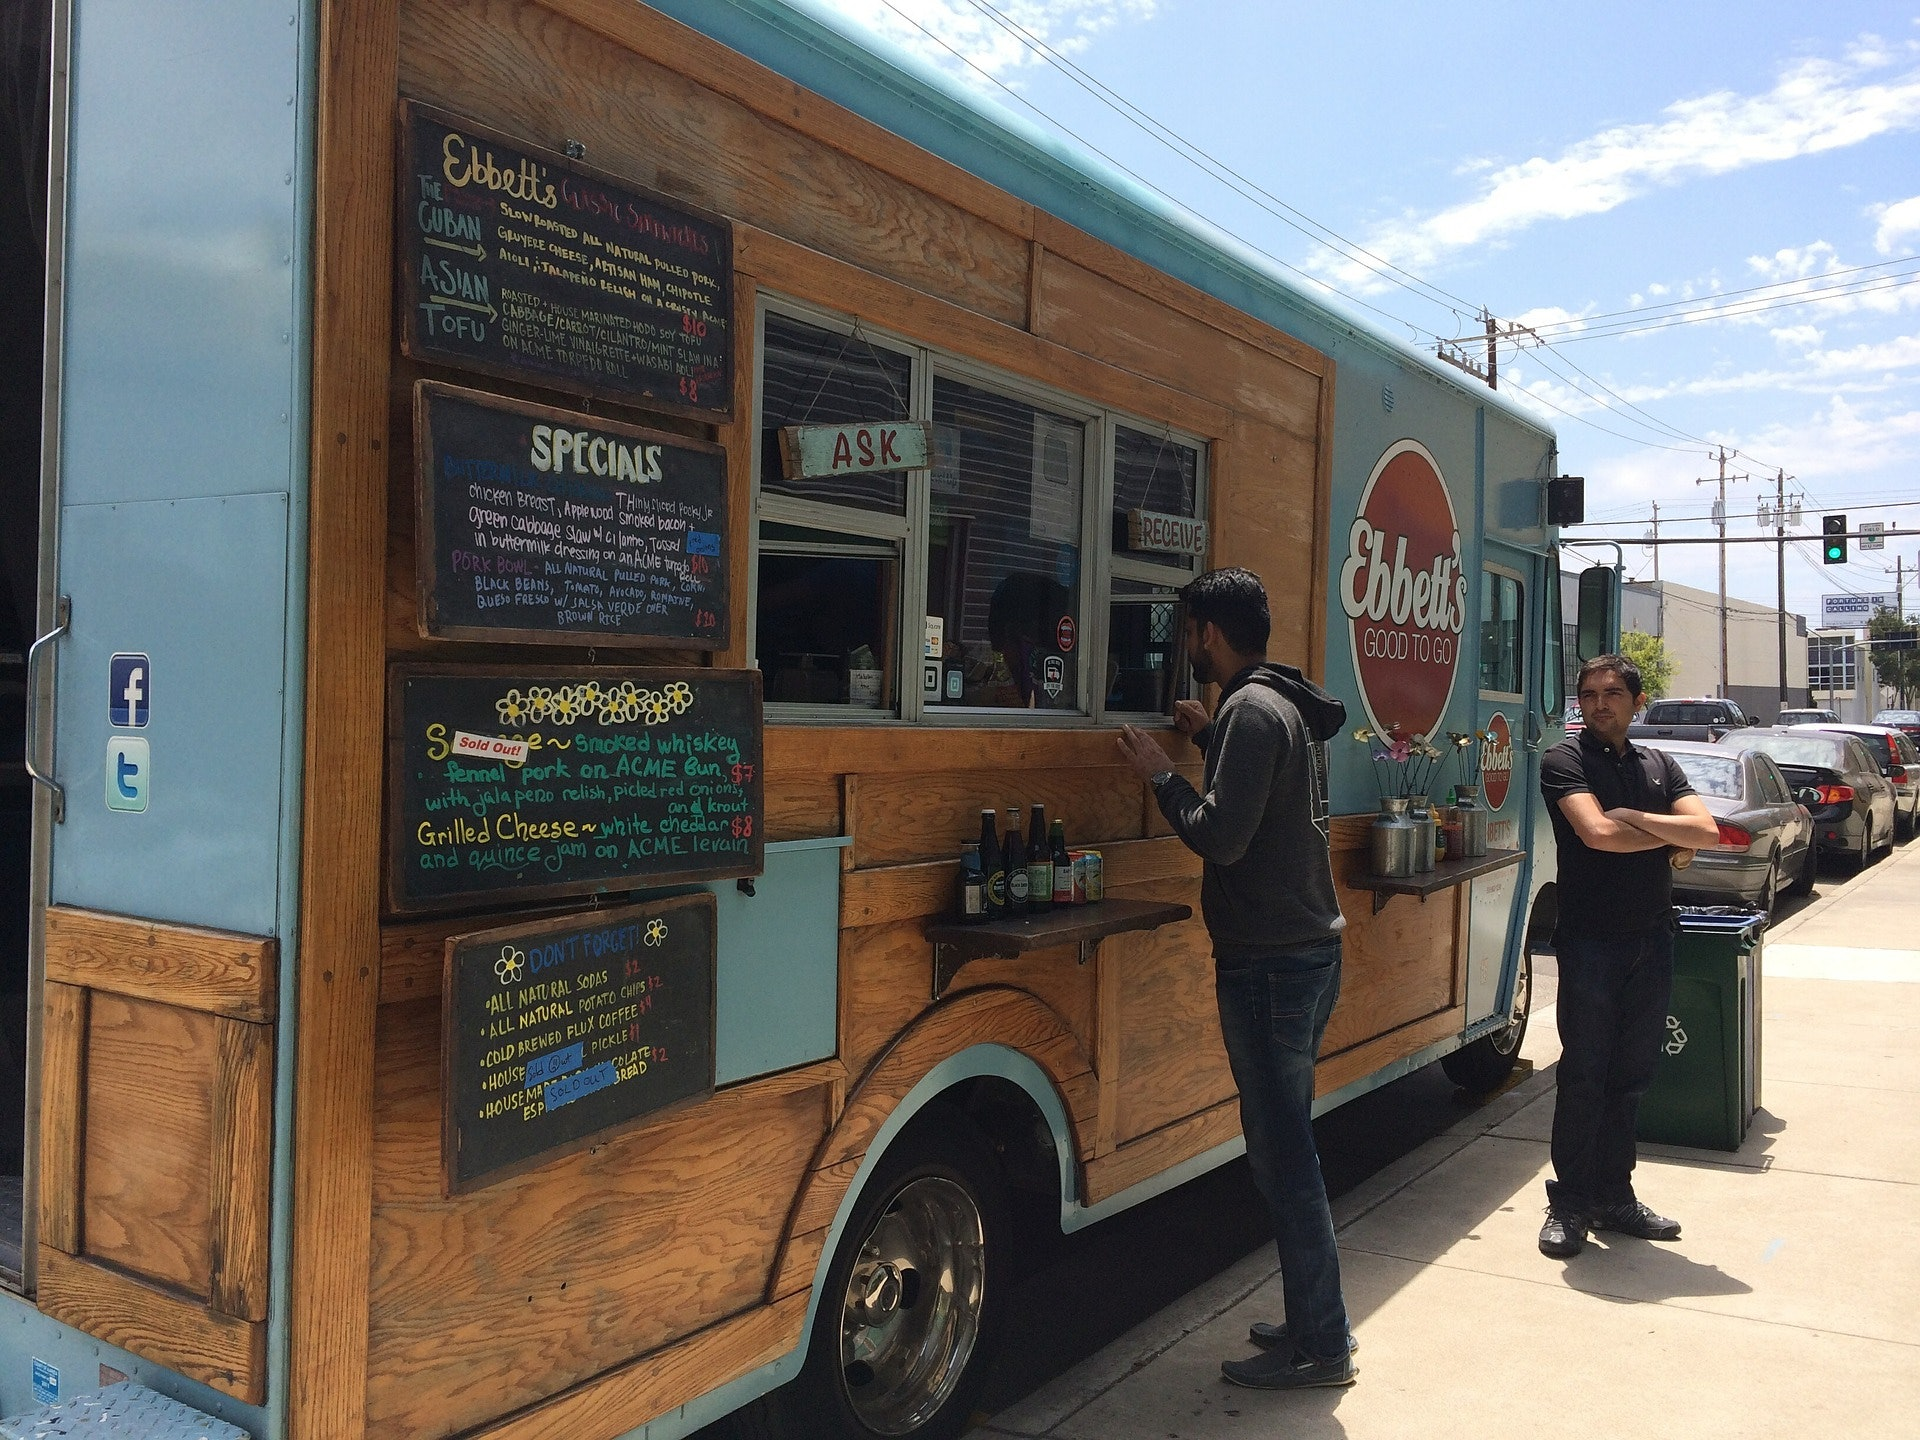 10 Best Food Trucks In The Us To Visit On National Food Truck Day